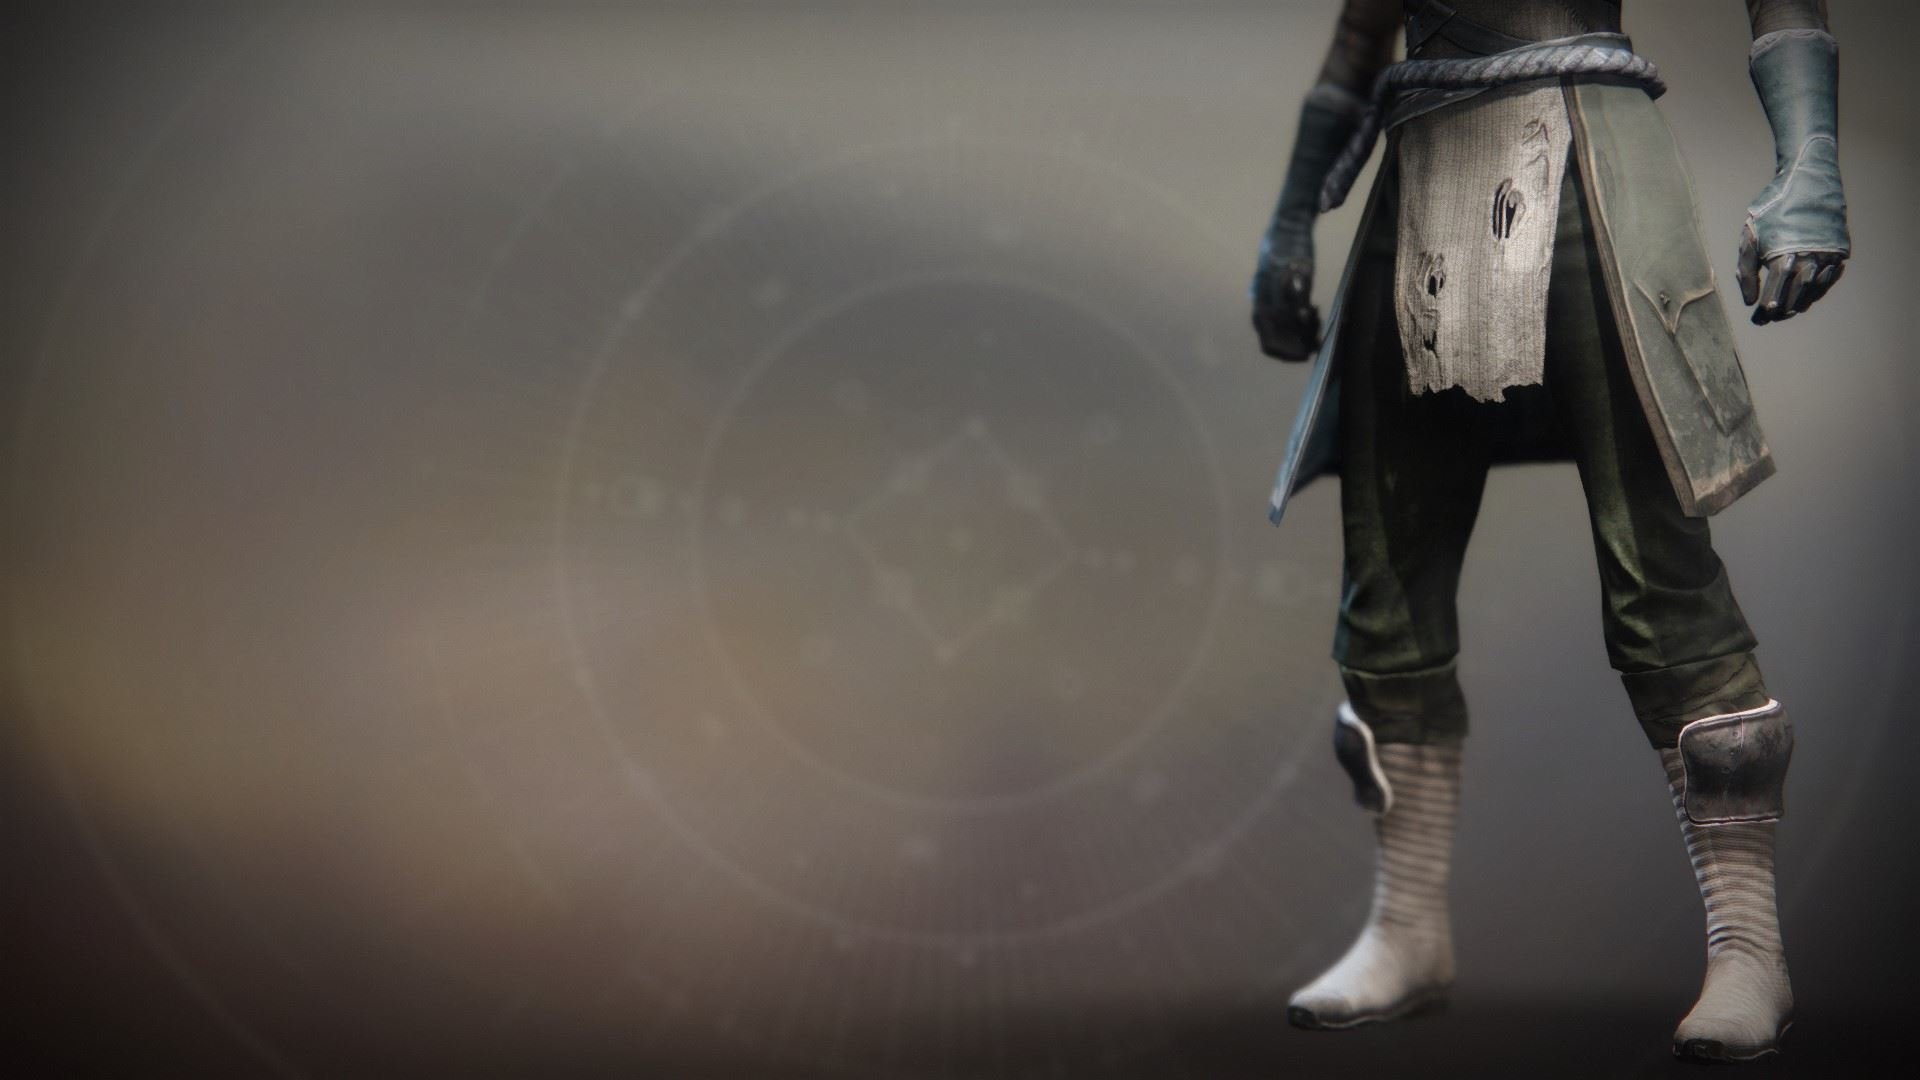 An in-game render of the Scatterhorn Boots.